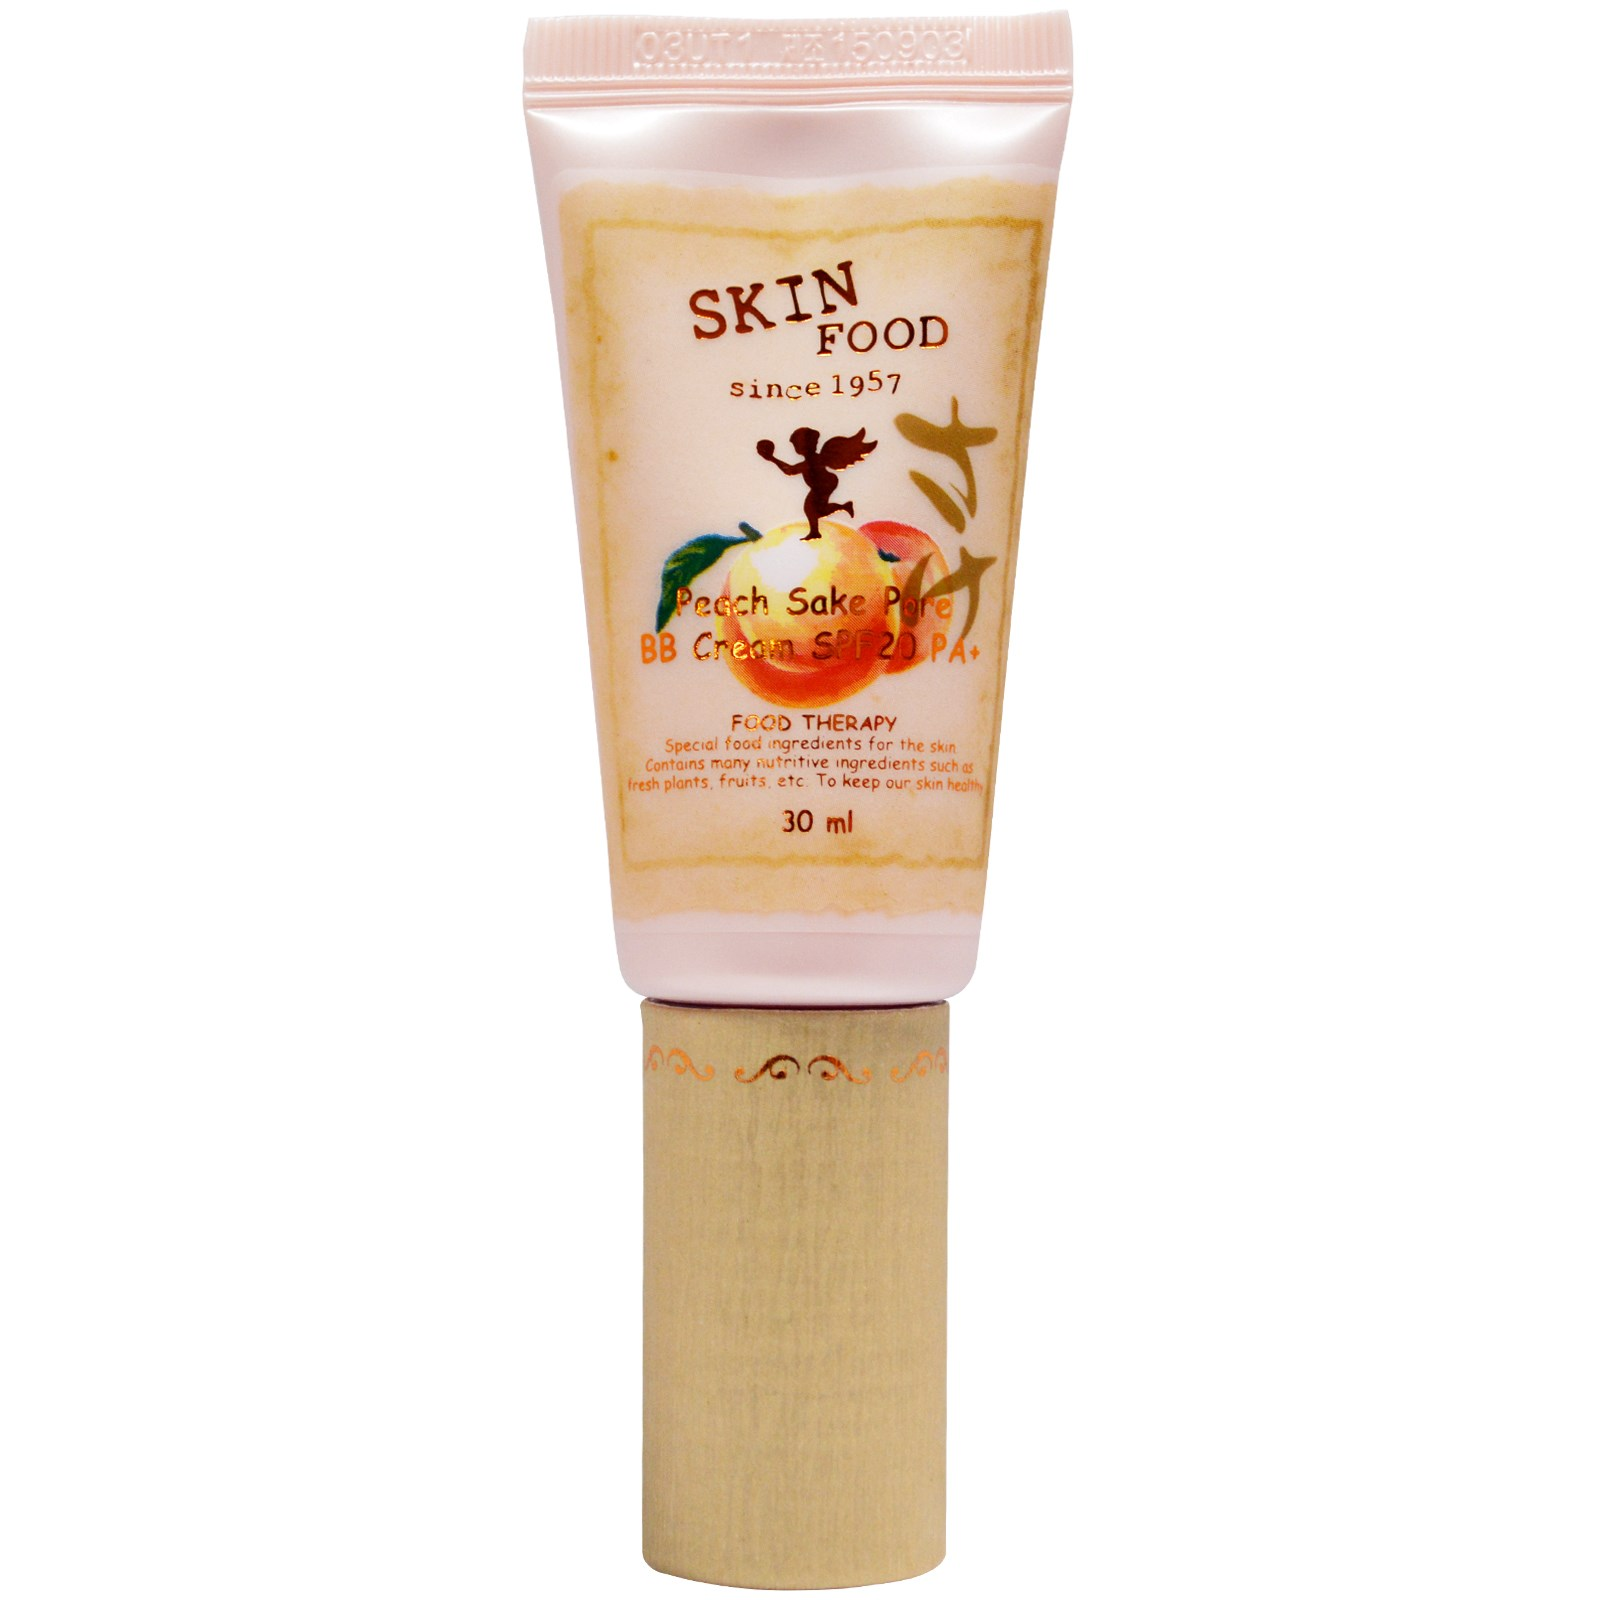 Peach Sake Pore Serum by Skinfood #19